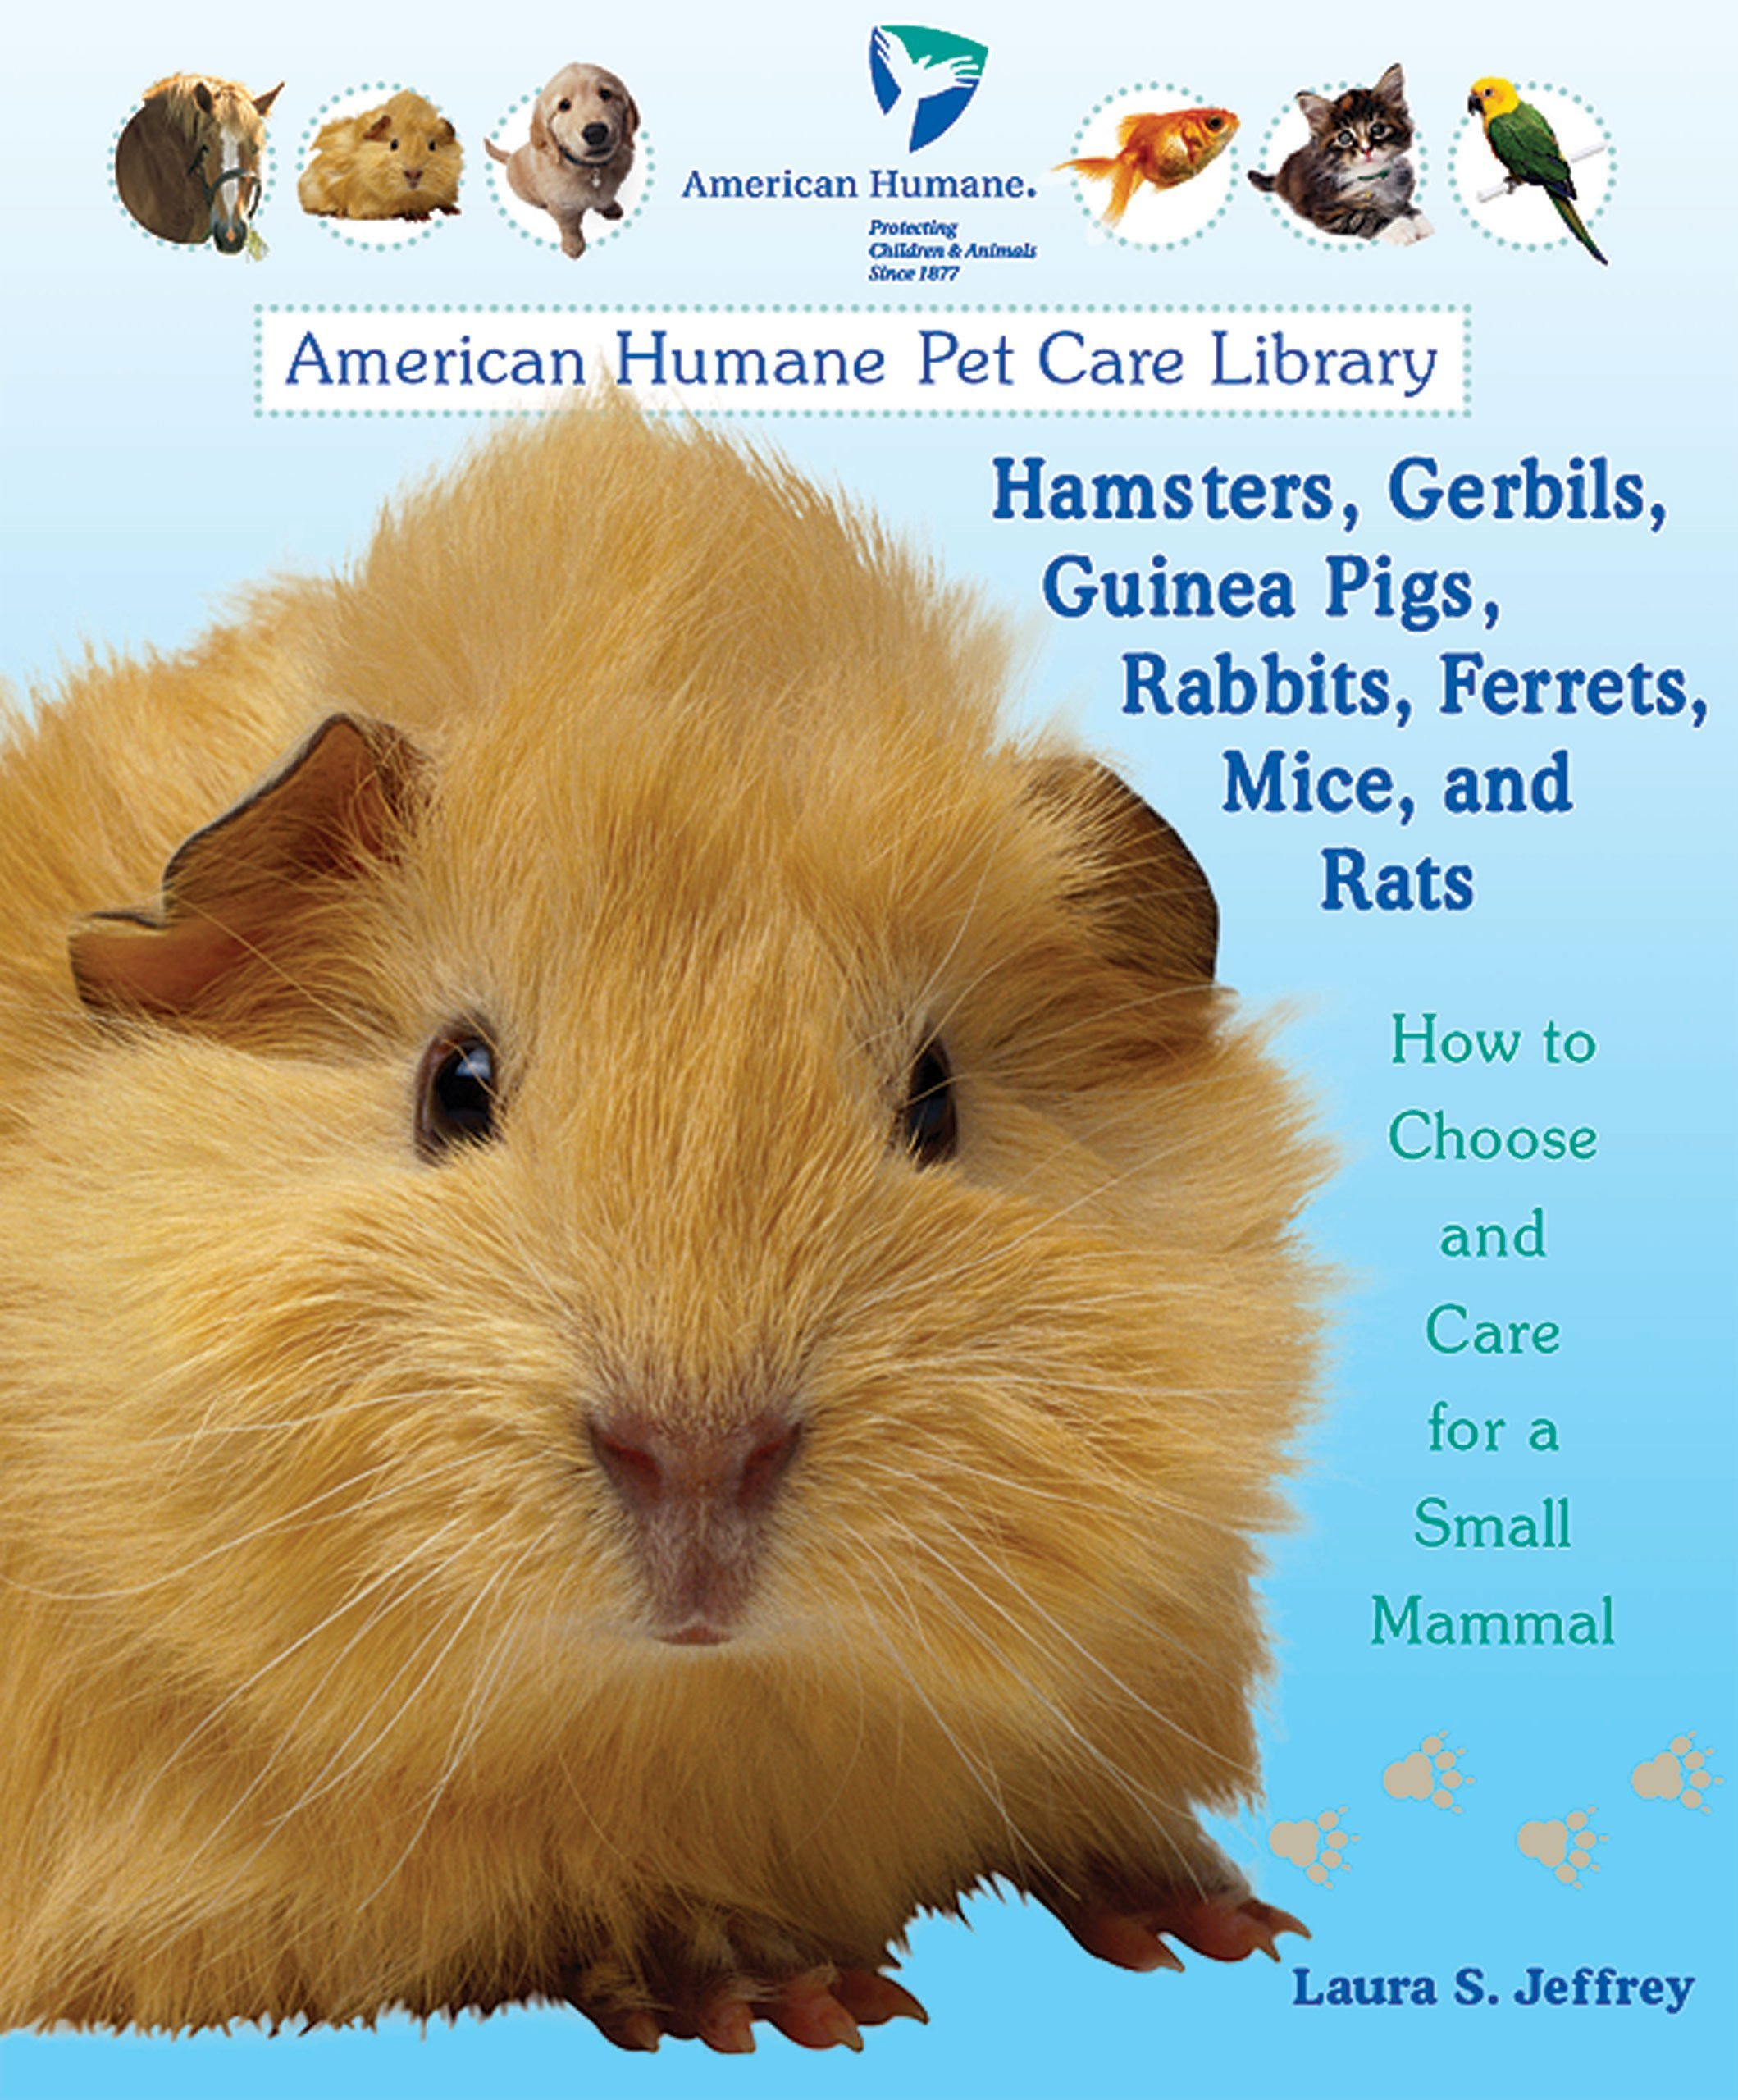 Uncategorized Hamsters And Guinea Pigs hamsters gerbils guinea pigs rabbits ferrets mice and rats how to choose care for a small mammal american humane pet c